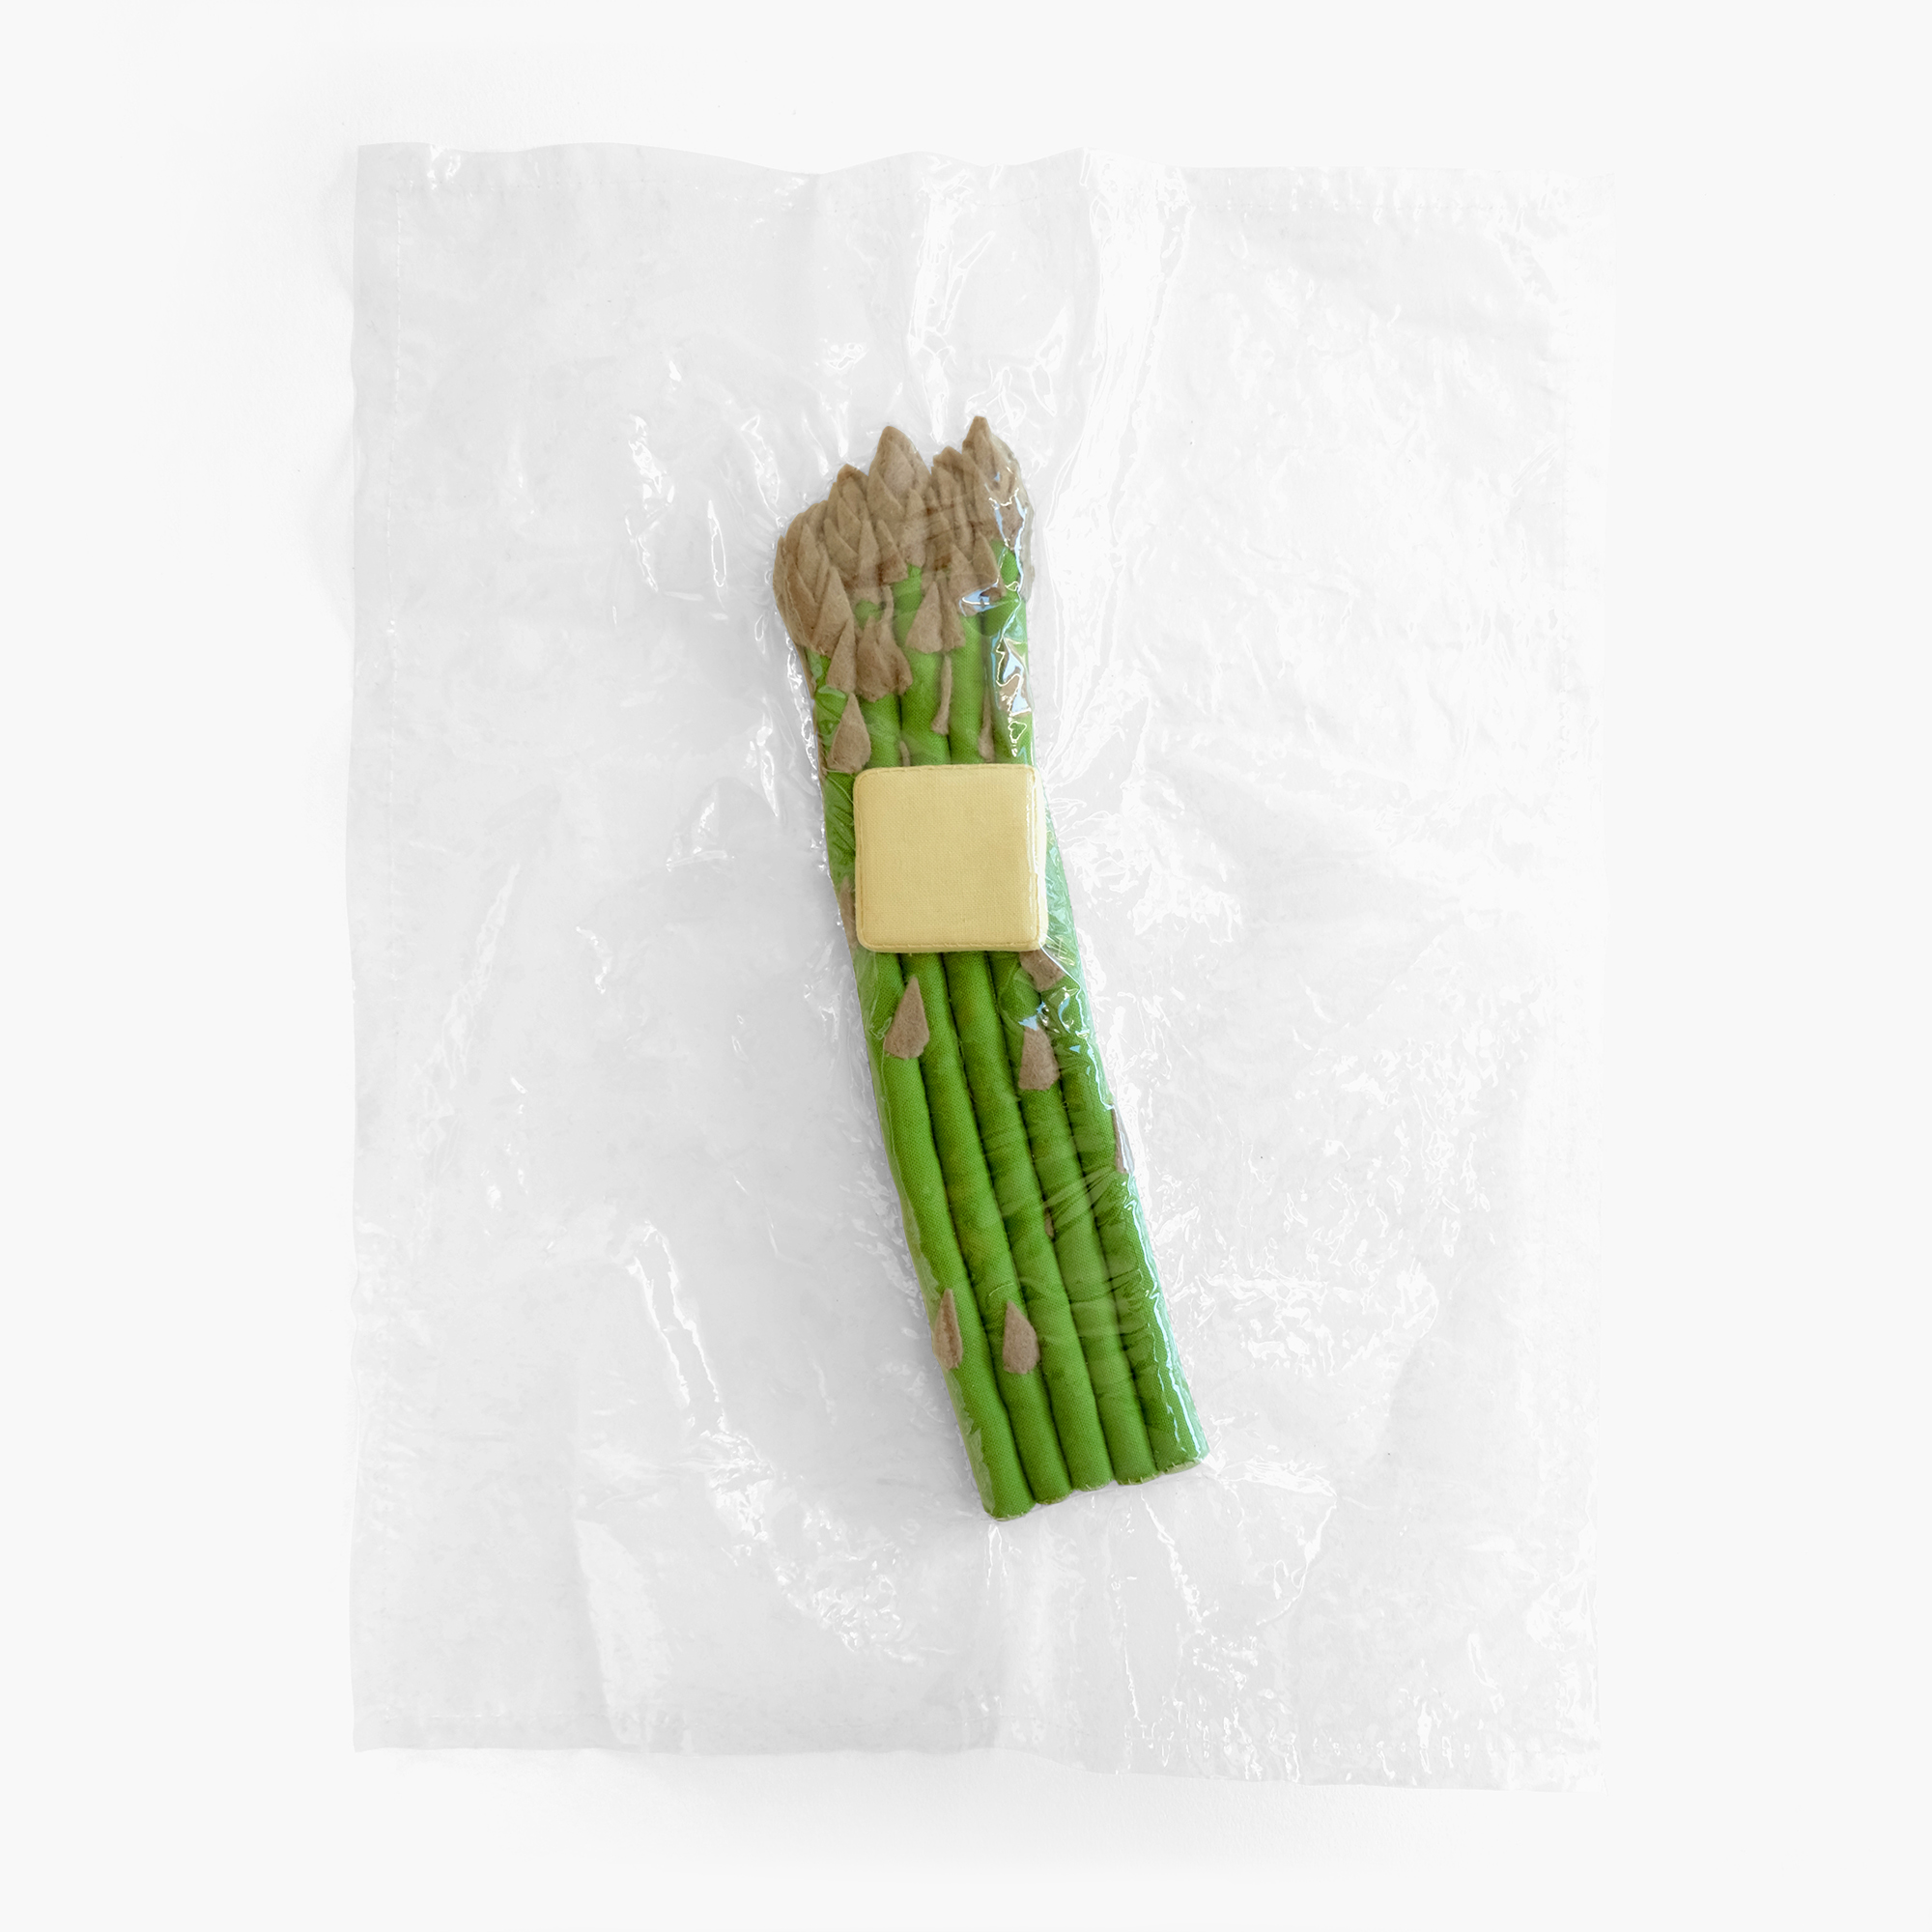 Sous Vide for One    Asparagus with butter   Fiberfill, felt, cotton cloth, vinyl 0.5 x 14 x 11 in 2014